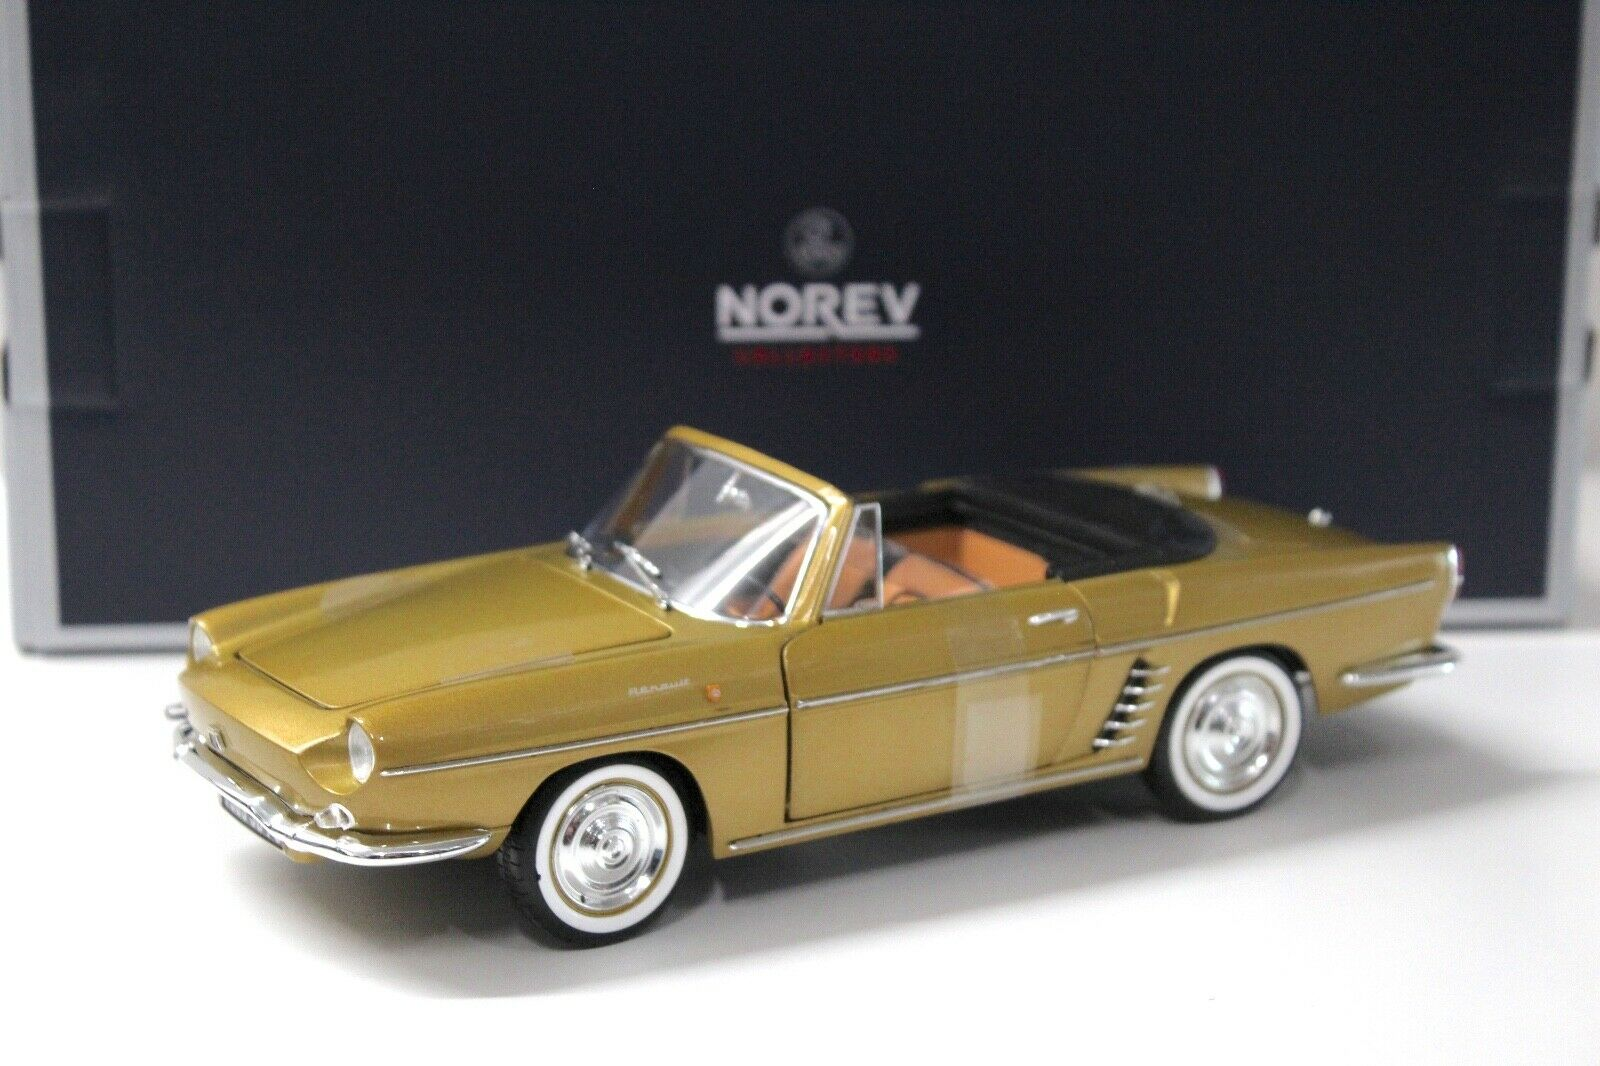 1 18 Norev Renault Floride Caravelle Bahamas Gelb NEW bei PREMIUM-MODELCARS